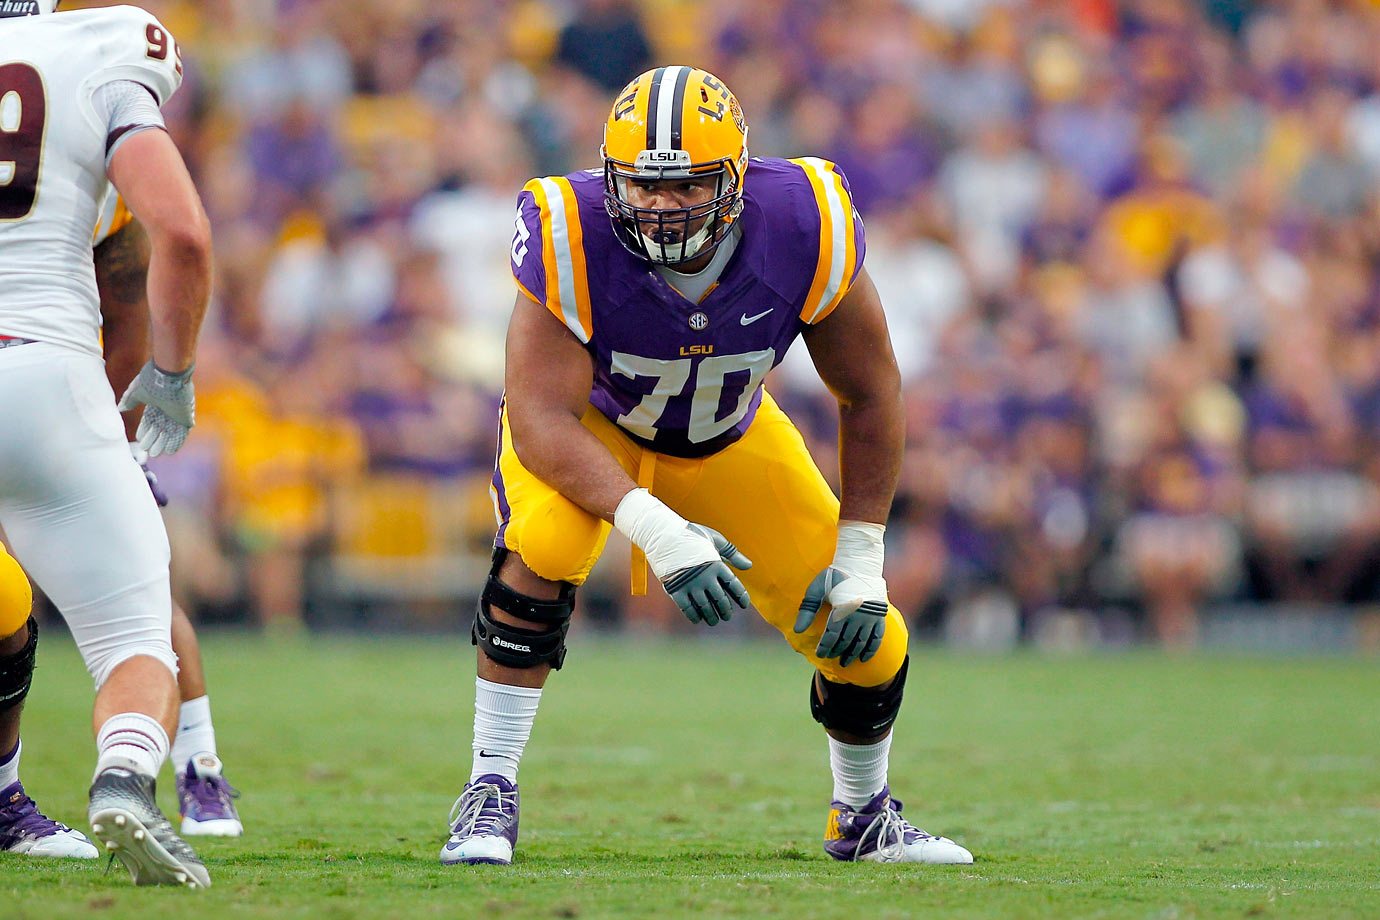 Collins has the size and strength to be an NFL star, but will he play at guard or tackle?